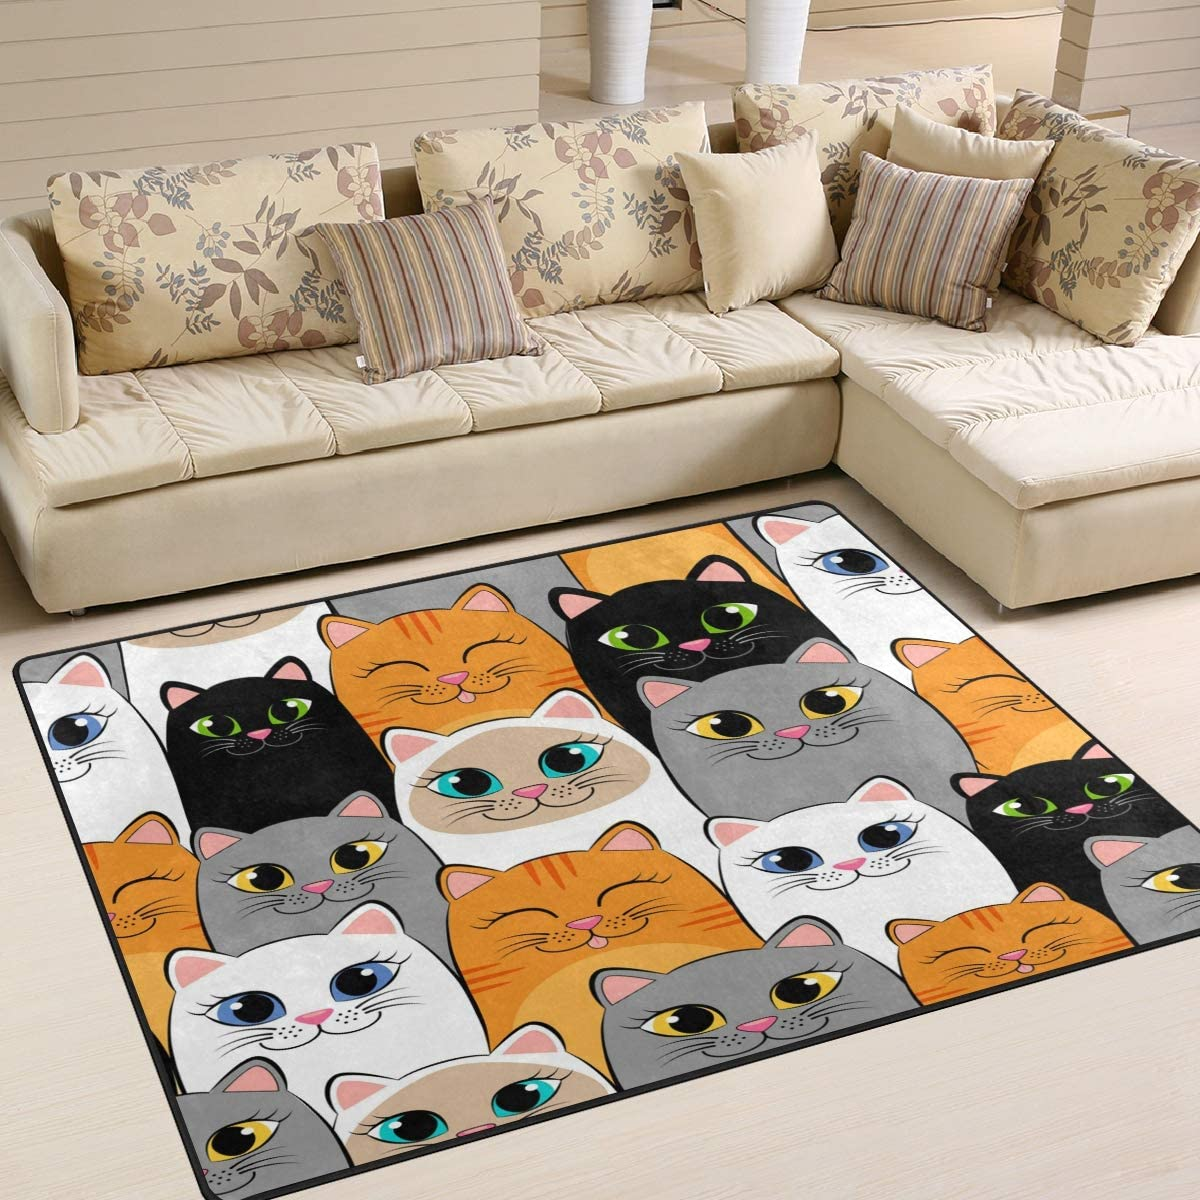 Free Shipping Cheap Bargain Gift ALAZA Cartoon Cat Kitten Face Animal Baltimore Mall Living Rugs Rug Area Ro for